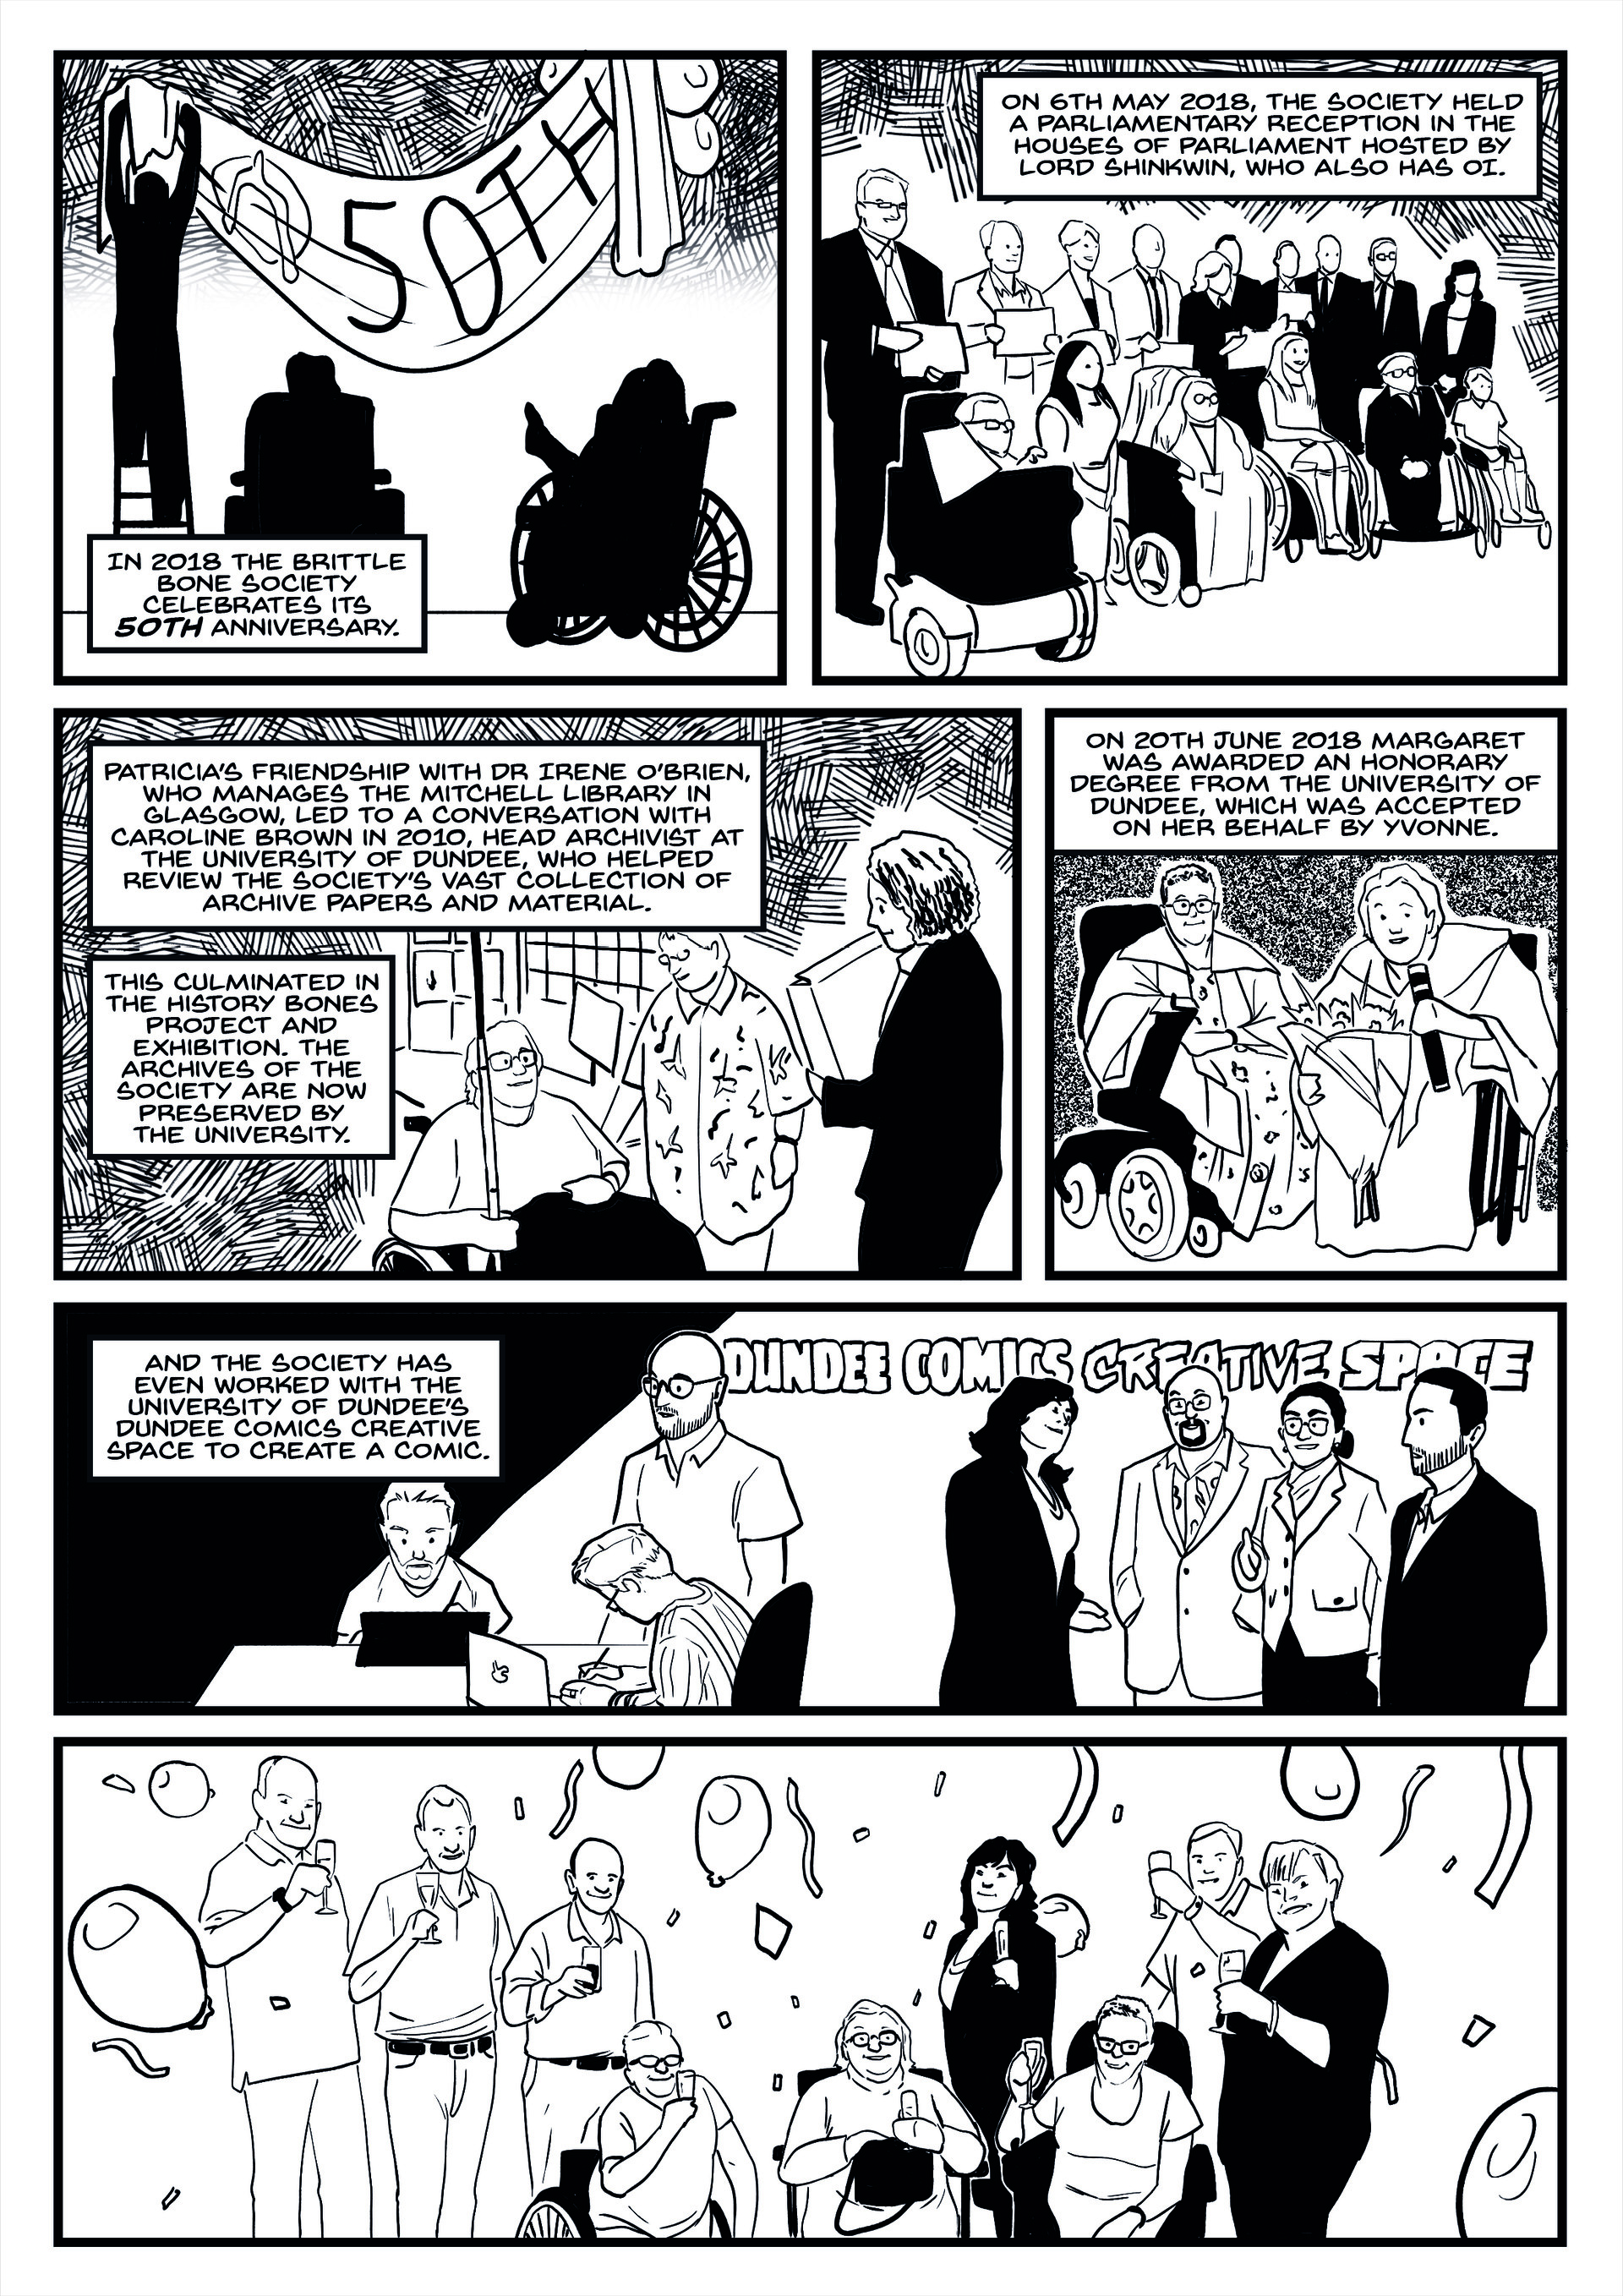 Elliot balson brittle bone society comic page 7 inks